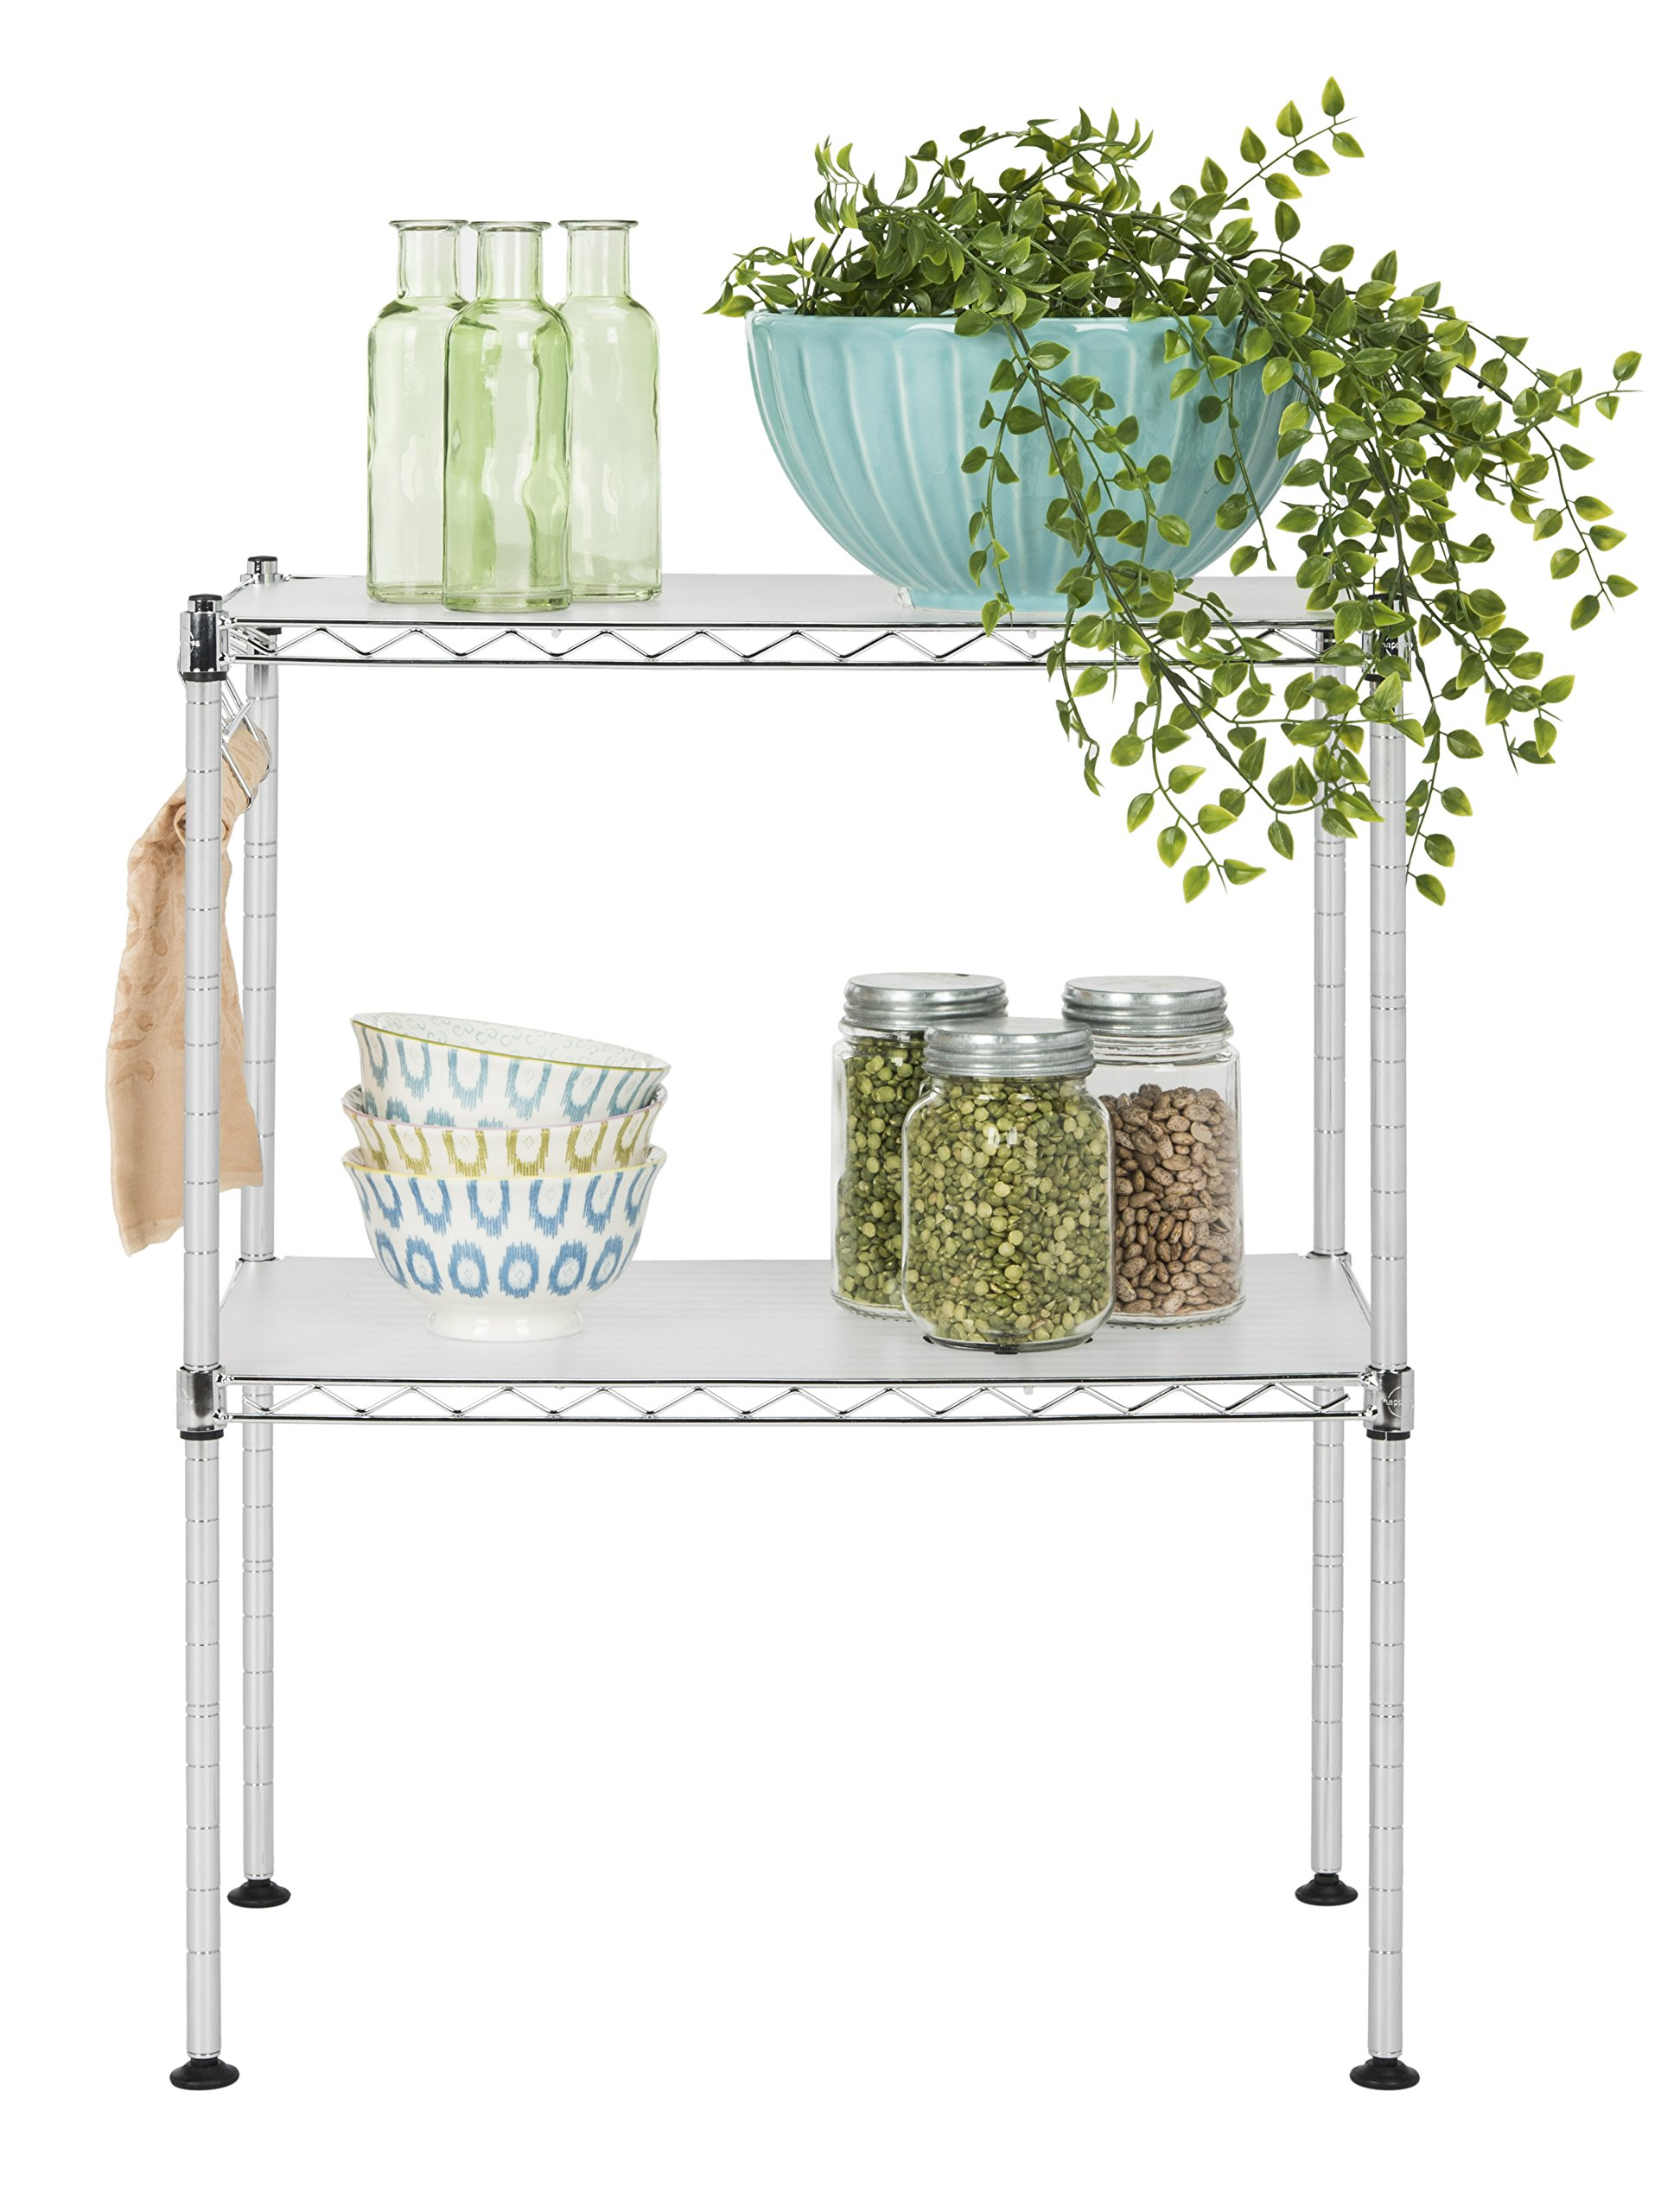 happimess HPM5013A Racking, 19.69 in. W x 11.81 in. D x 23.62 in. H, Silver by happimess (Image #2)